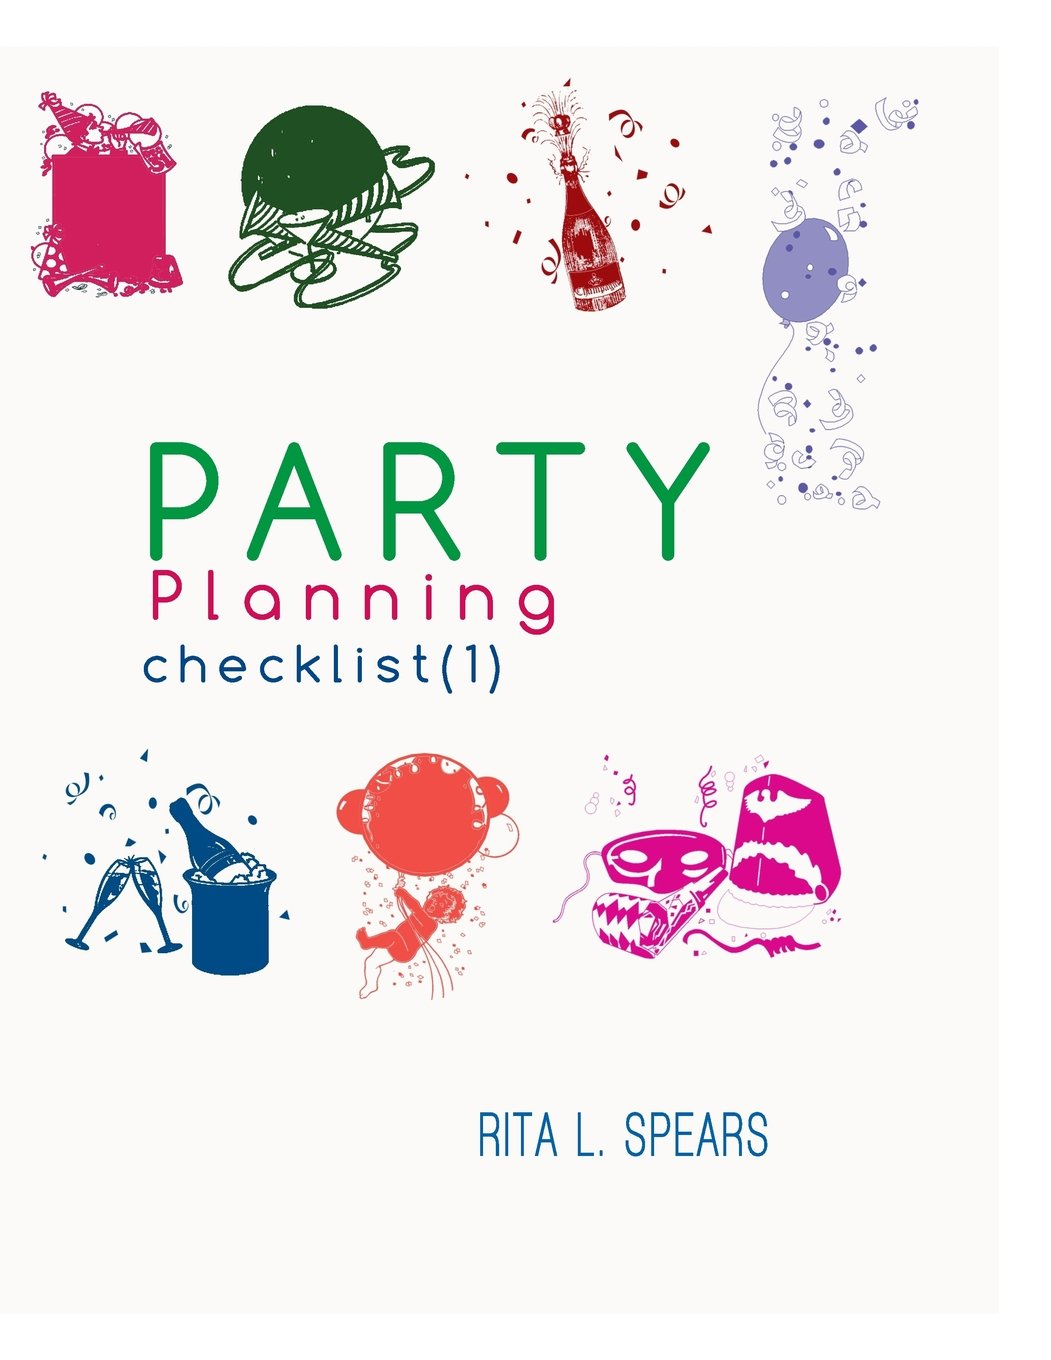 Download The Party Planning: Ideas, Checklist, Budget, Bar& Menu for a Successful Party (Planning Checklist1) (Volume 1) PDF